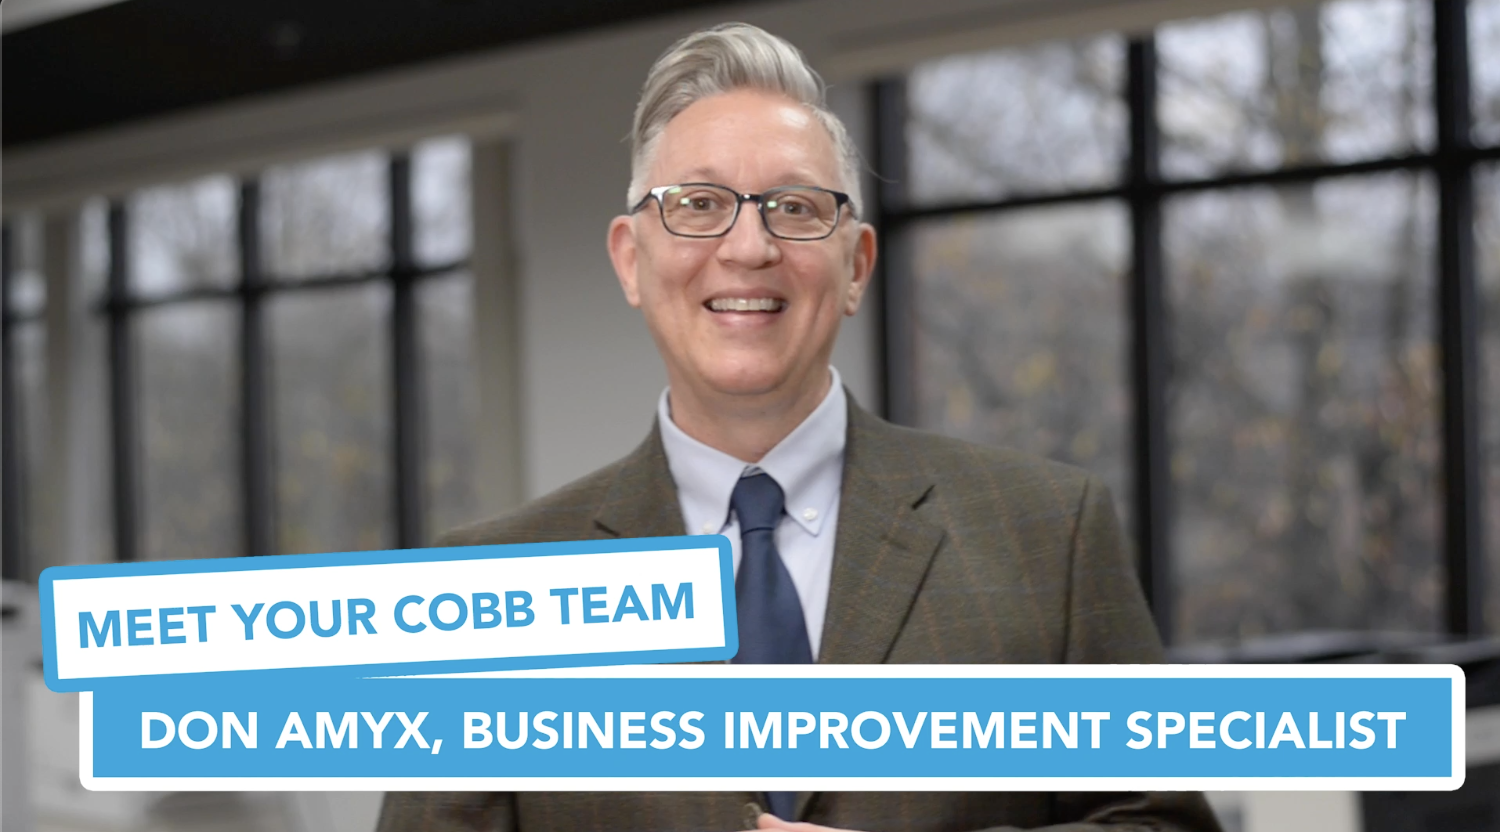 Meet Your Cobb Team: Don Amyx, Business Improvement Specialist